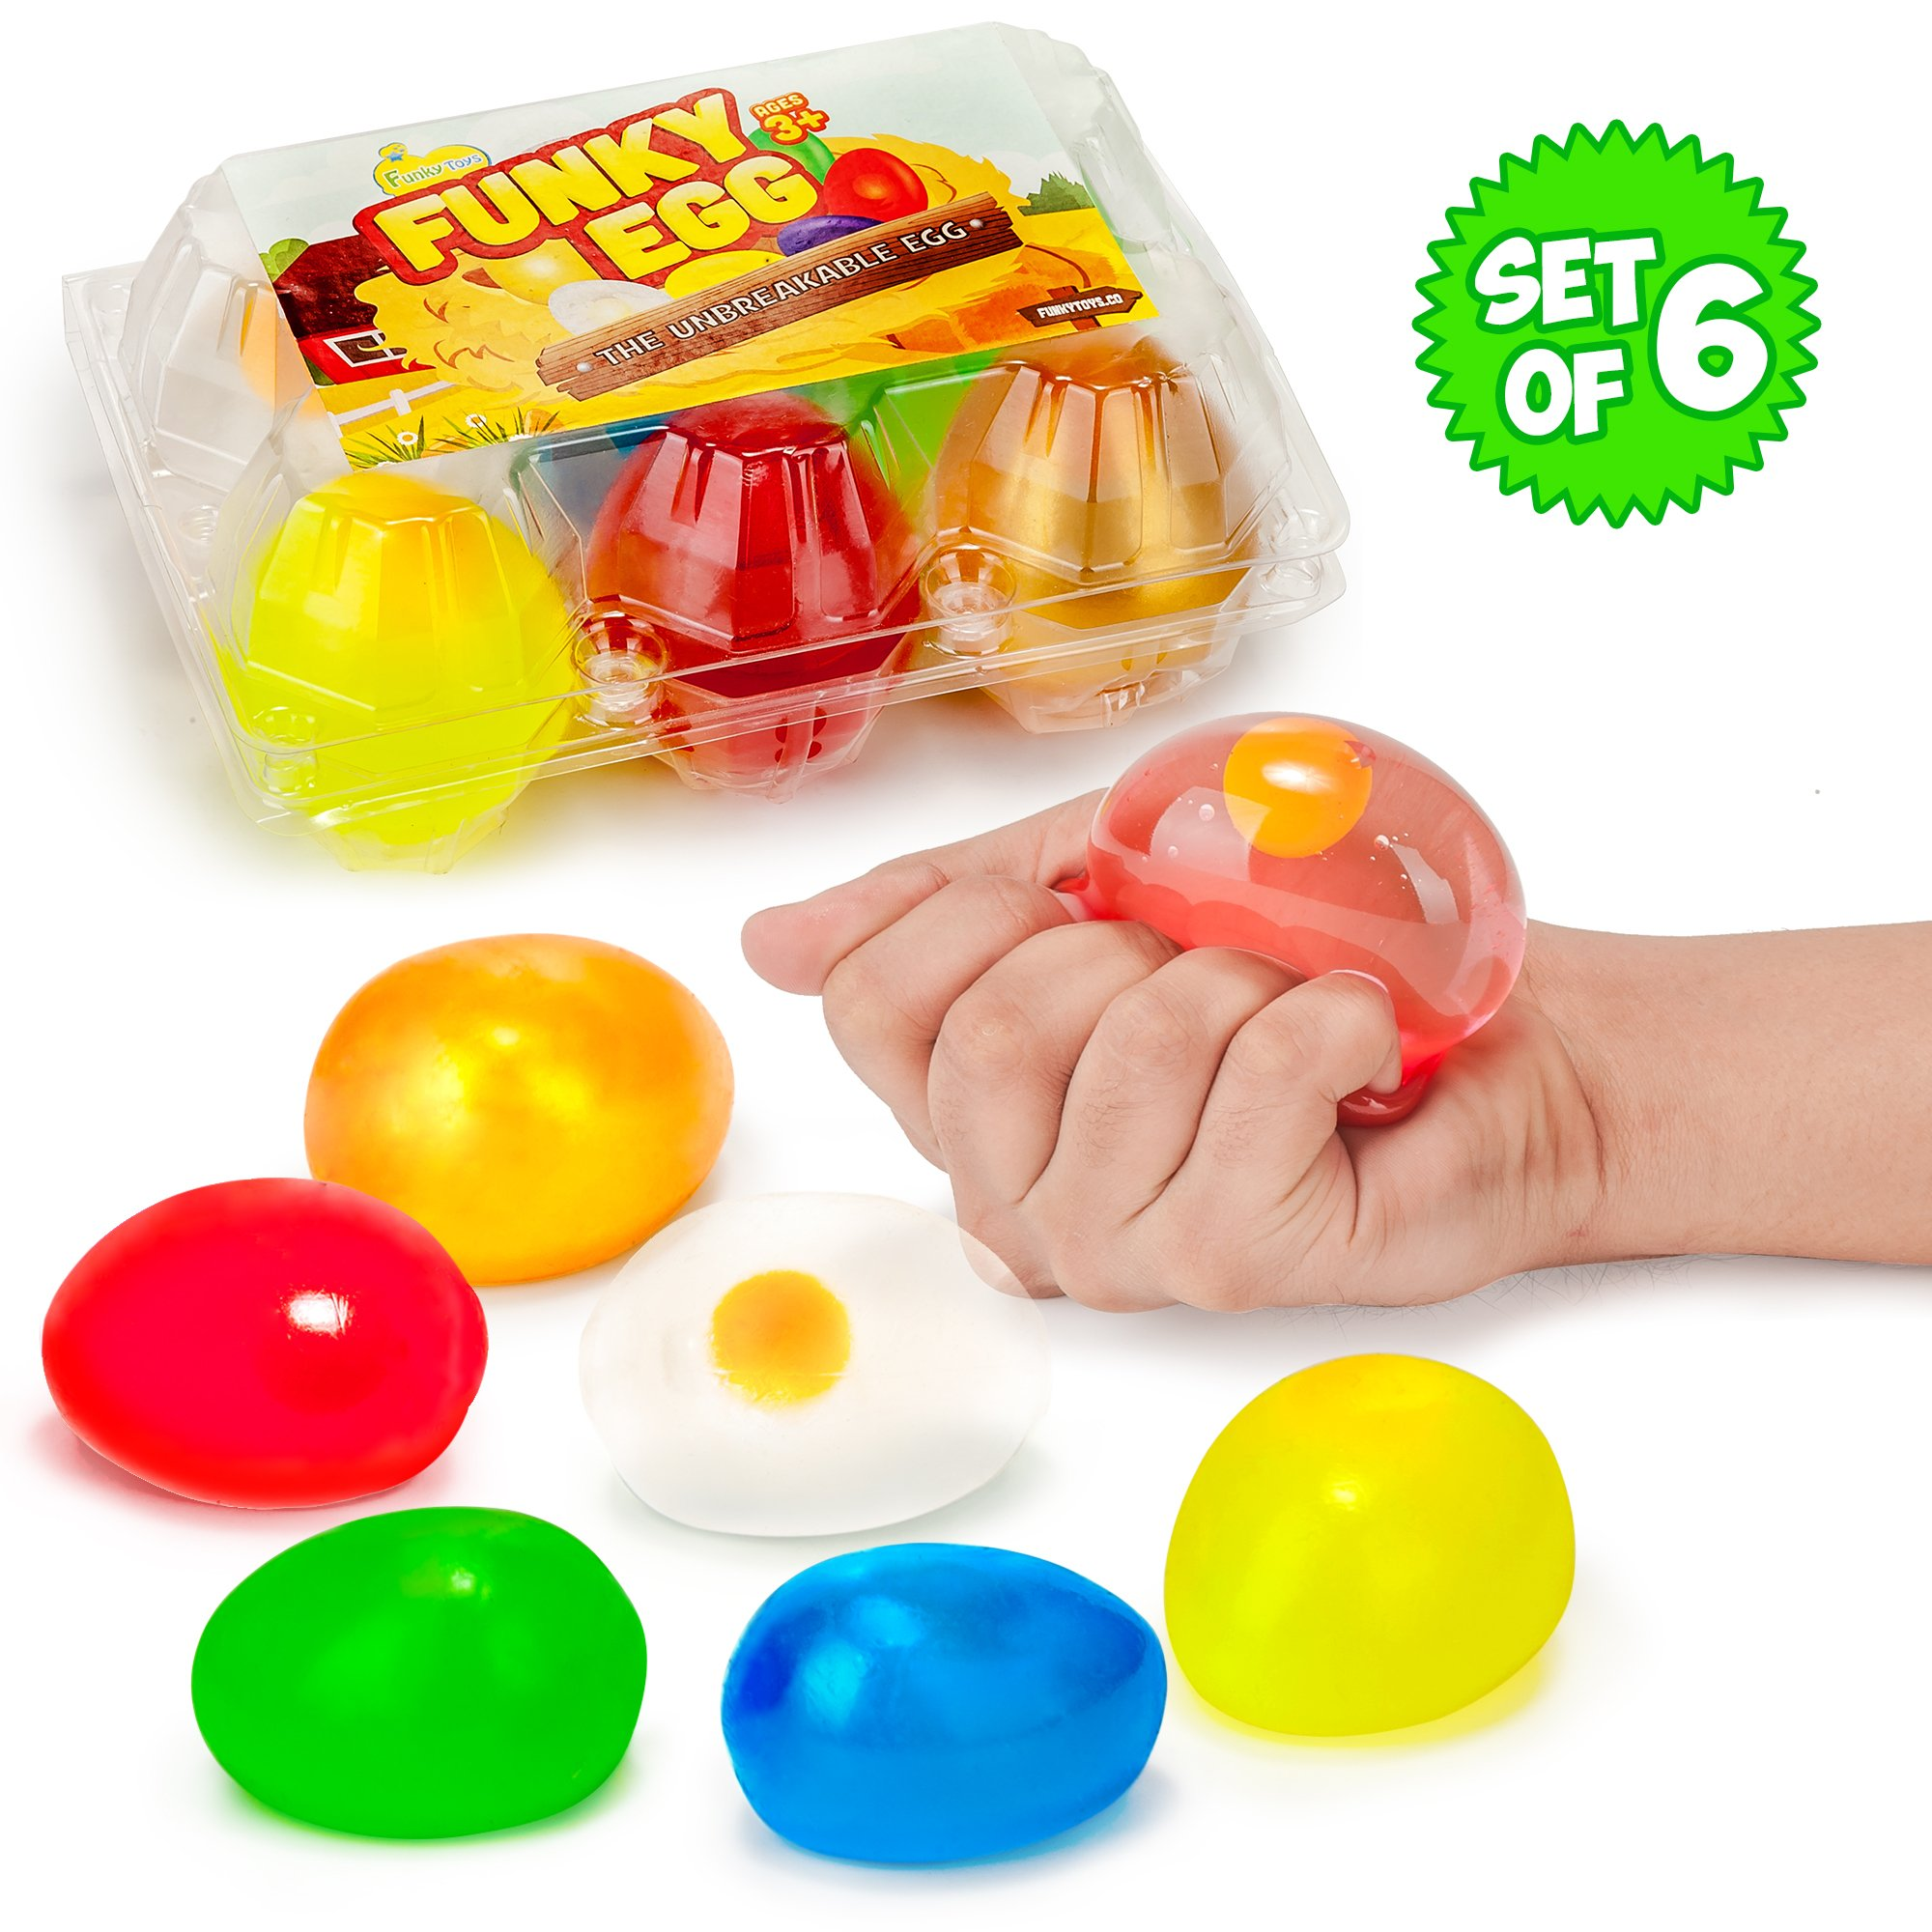 Funky Egg Colorful Splat Ball Squishy Toys | 6 Pack | Stress Relief Eggs Yolk Balls Squishies - Fun Toy For Easter | Anxiety Reducer Sensory Play | Tension Relief For Kids | For Autism & ADHD